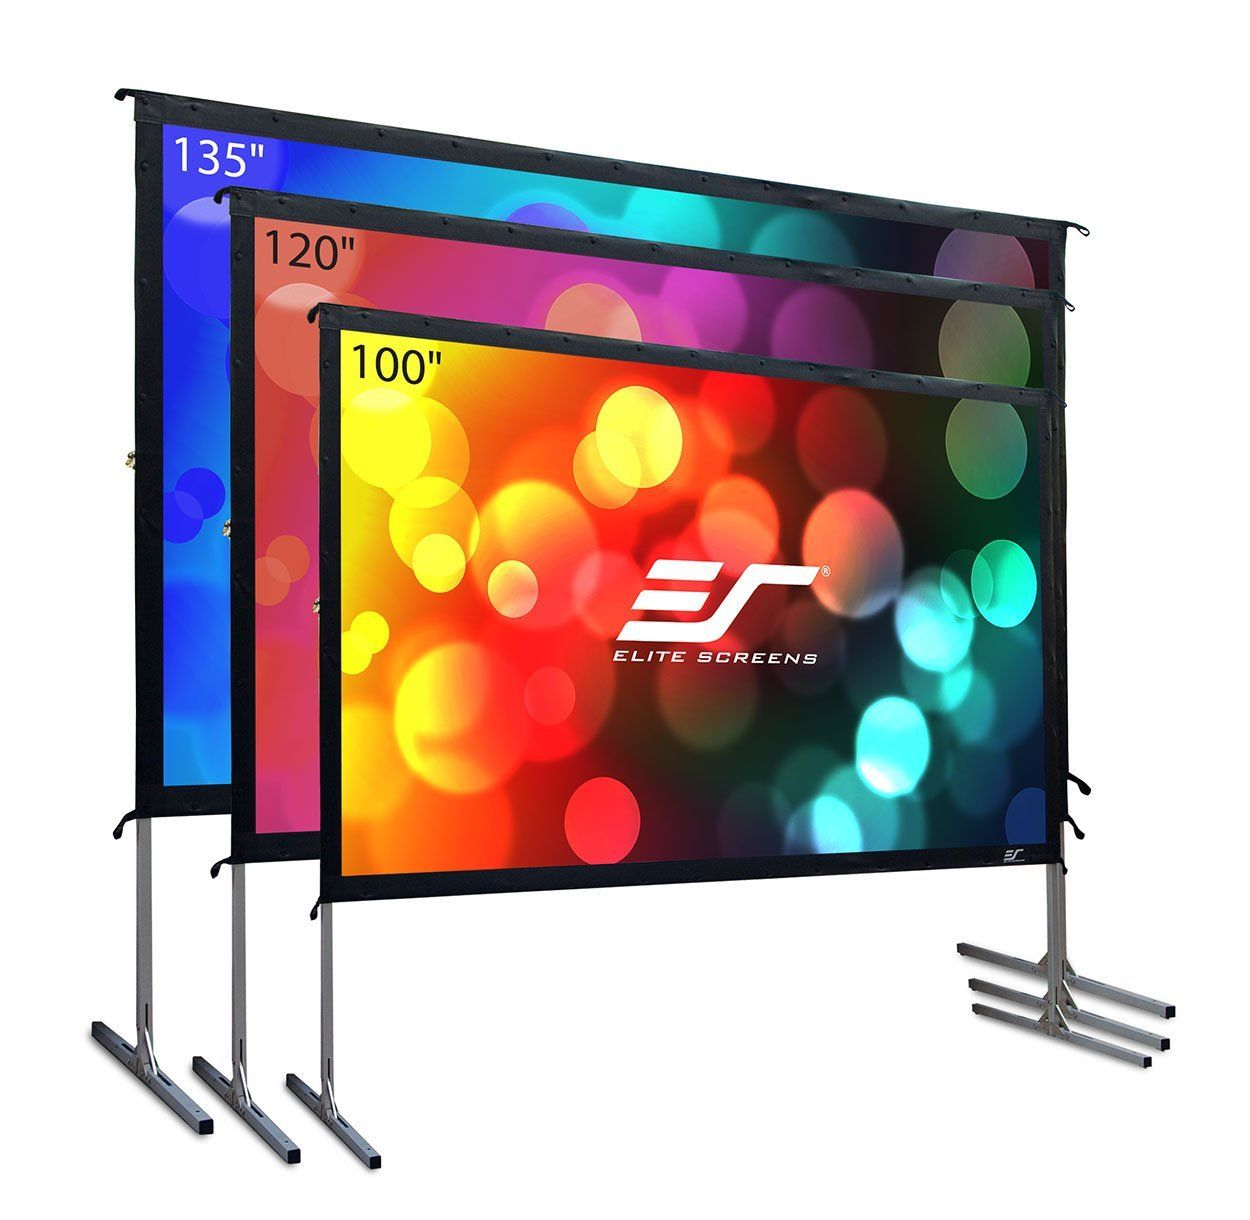 Amazon Com Elite Screens Yard Master 2 120 Inch Outdoor Projector Screen With Stand 16 9 8k 4k Outdoor Projector Screens Outdoor Projector Projection Screen